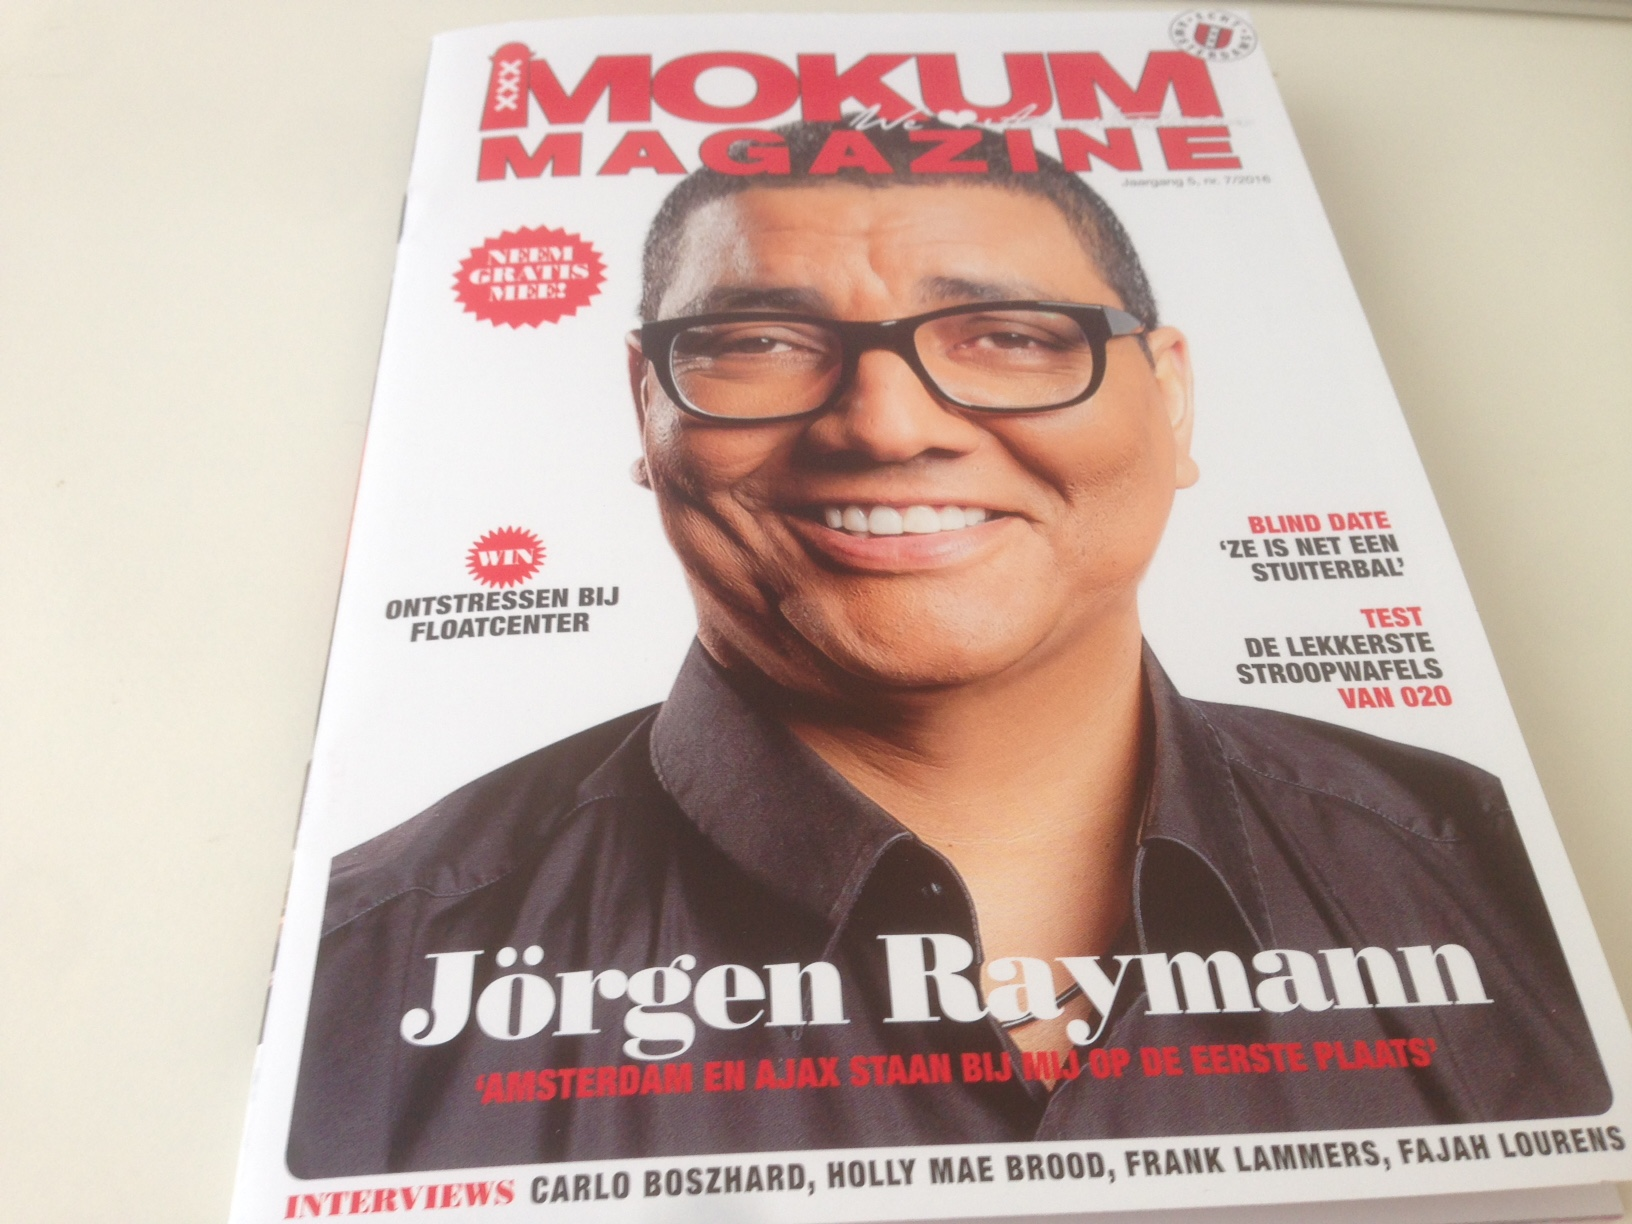 Mokum-Magazine-cover